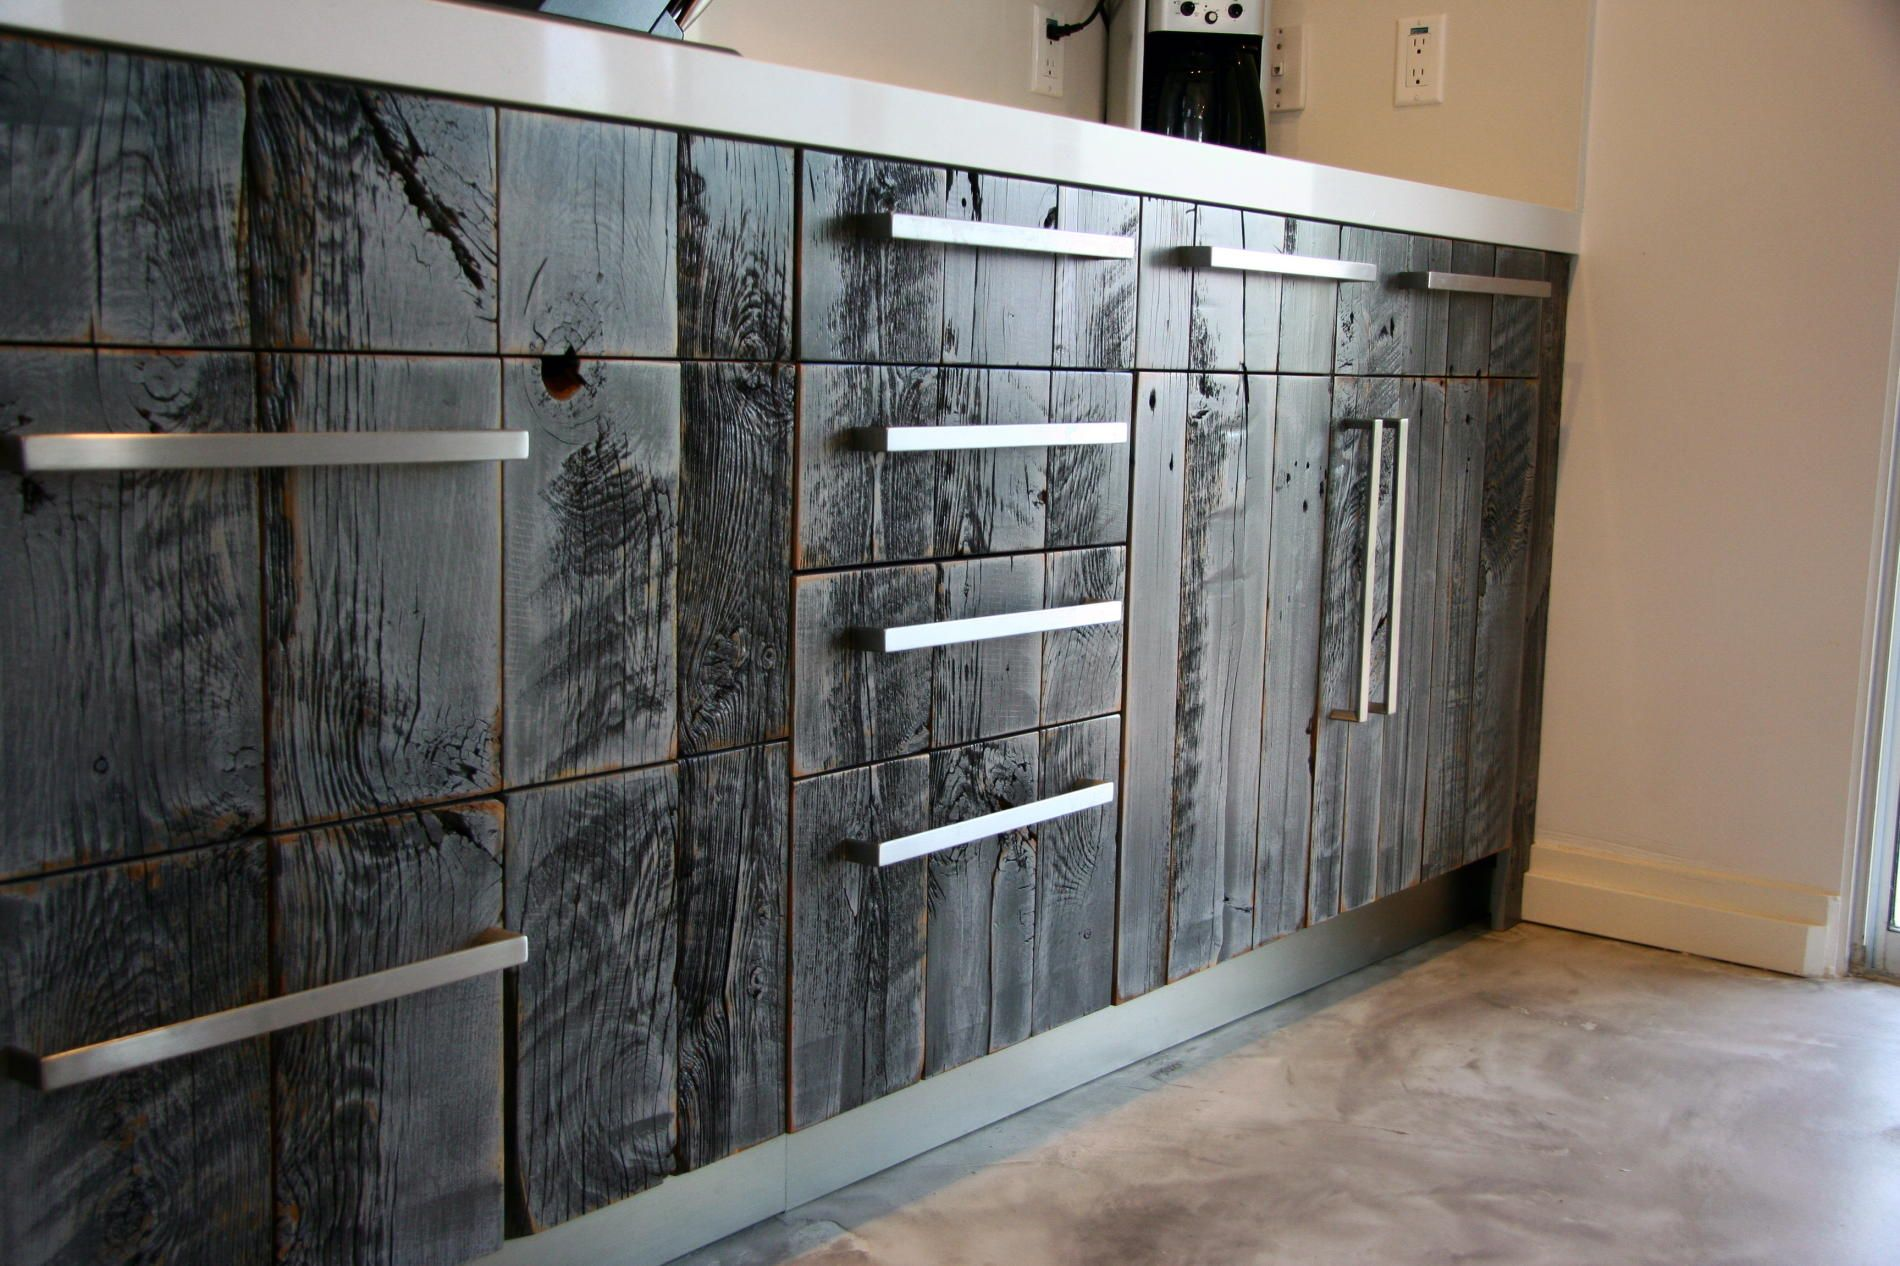 ikea kitchen ideas Semihandmade Semihandmade Custom IKEA Doors I would love a kitchen using recycled timber doors